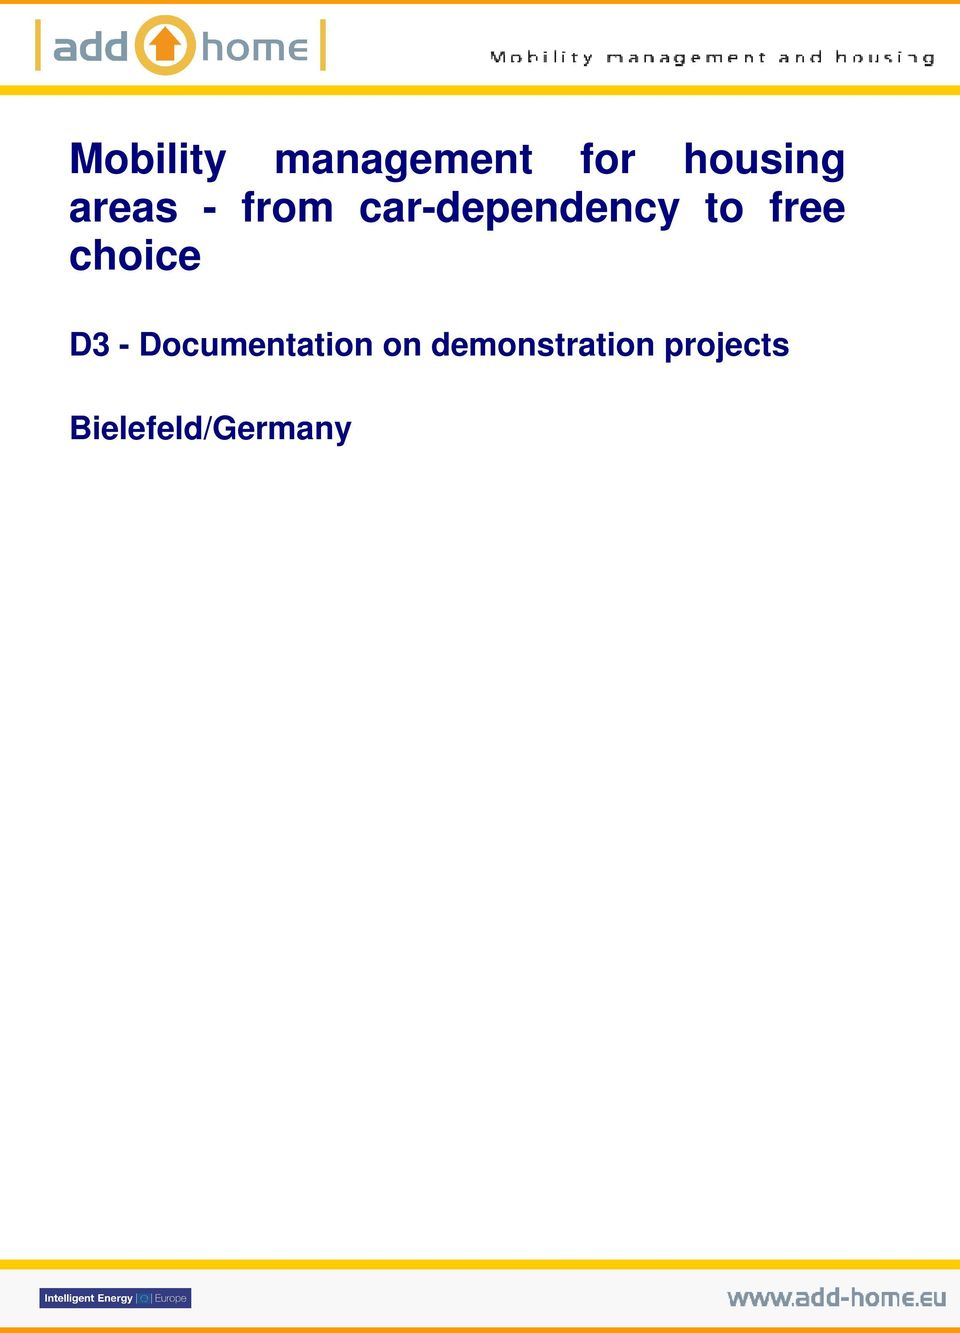 free choice D3 - Documentation on